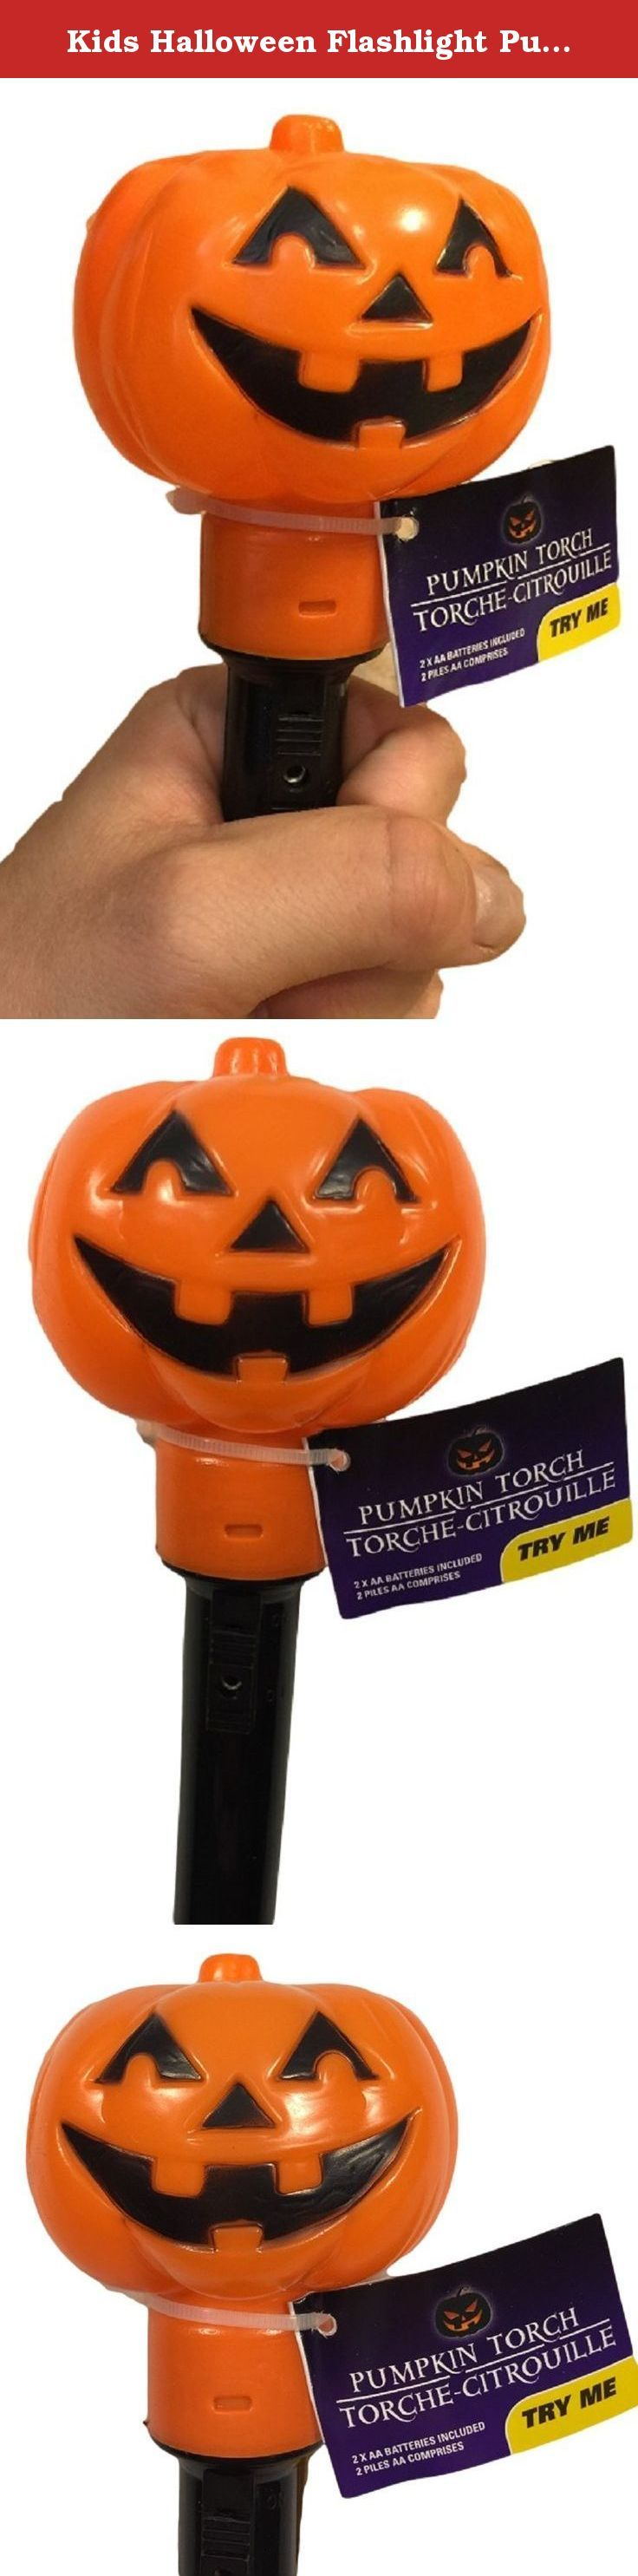 Kids Halloween Flashlight Pumpkin Trick or Treat Torch Hand Held Mini Safety Children Night Light. Hunting for candy on Halloween night can be dark and scary for little Trick or Treaters. Help them find the way easily with this cute pumpkin flashlight. It's very lightweight and fits comfortably in small hands so it is easy for them to hold onto and carry. And the cute pumpkin face won't be too scary for little children. A big plus is that you will be able to keep an eye on your own little...